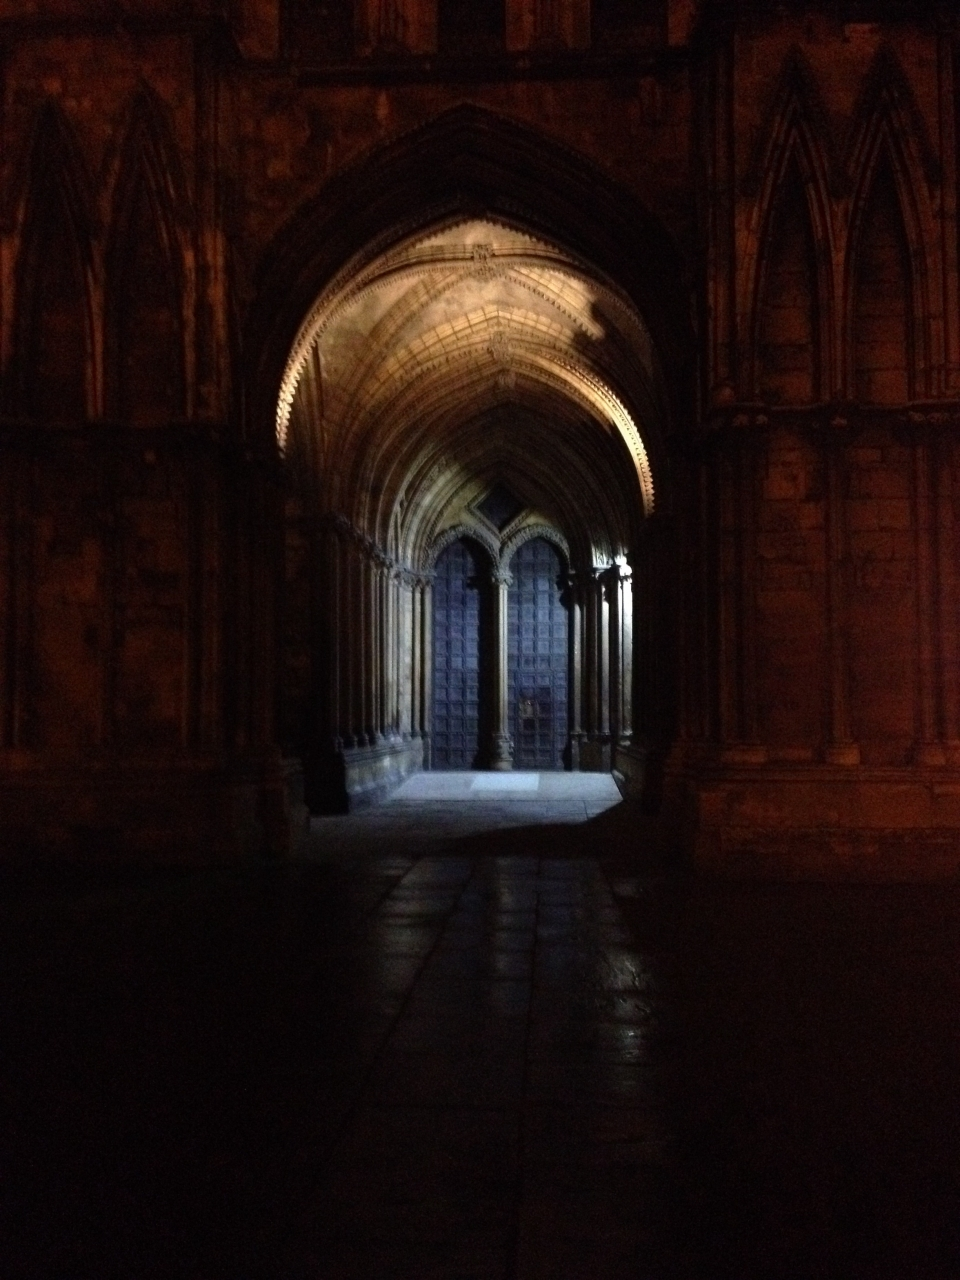 Taken at night. Lincoln cathedral back entrance